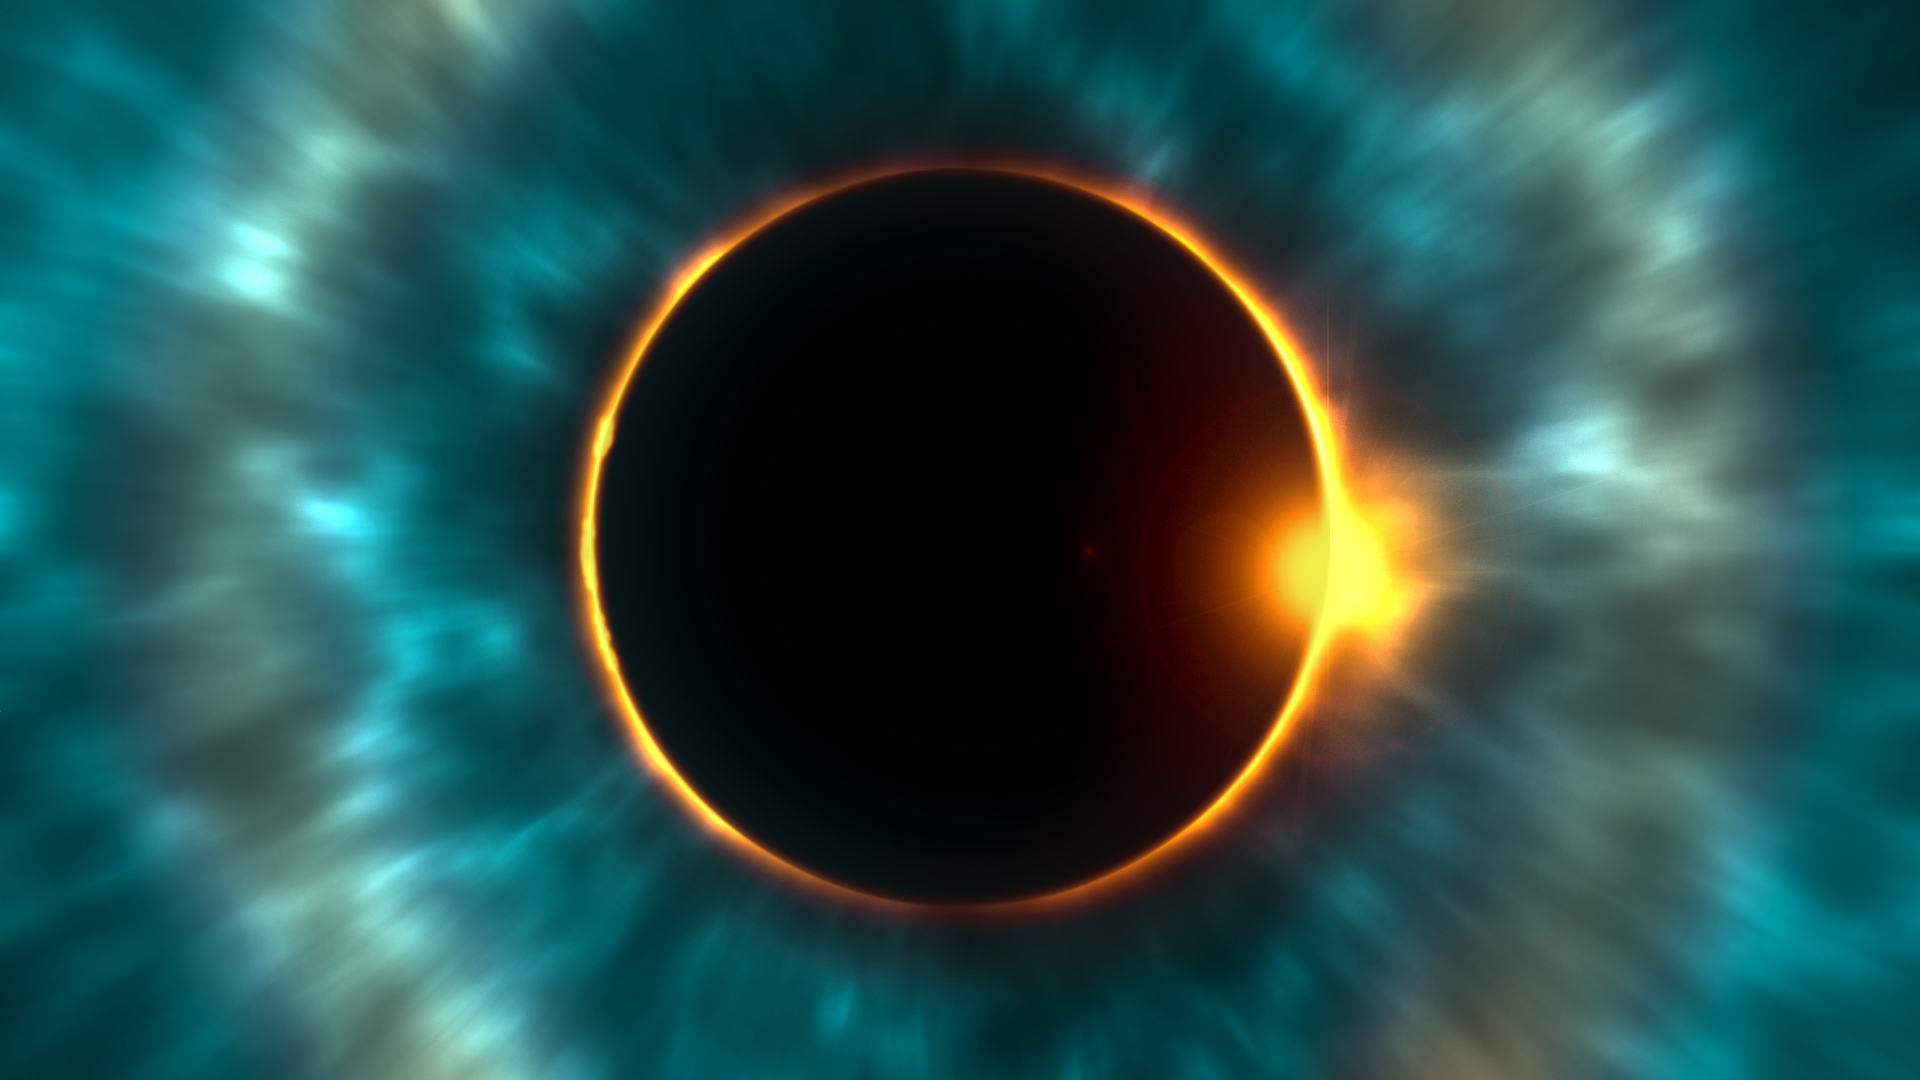 life after divorce and learning to love depicted by image of eclipse